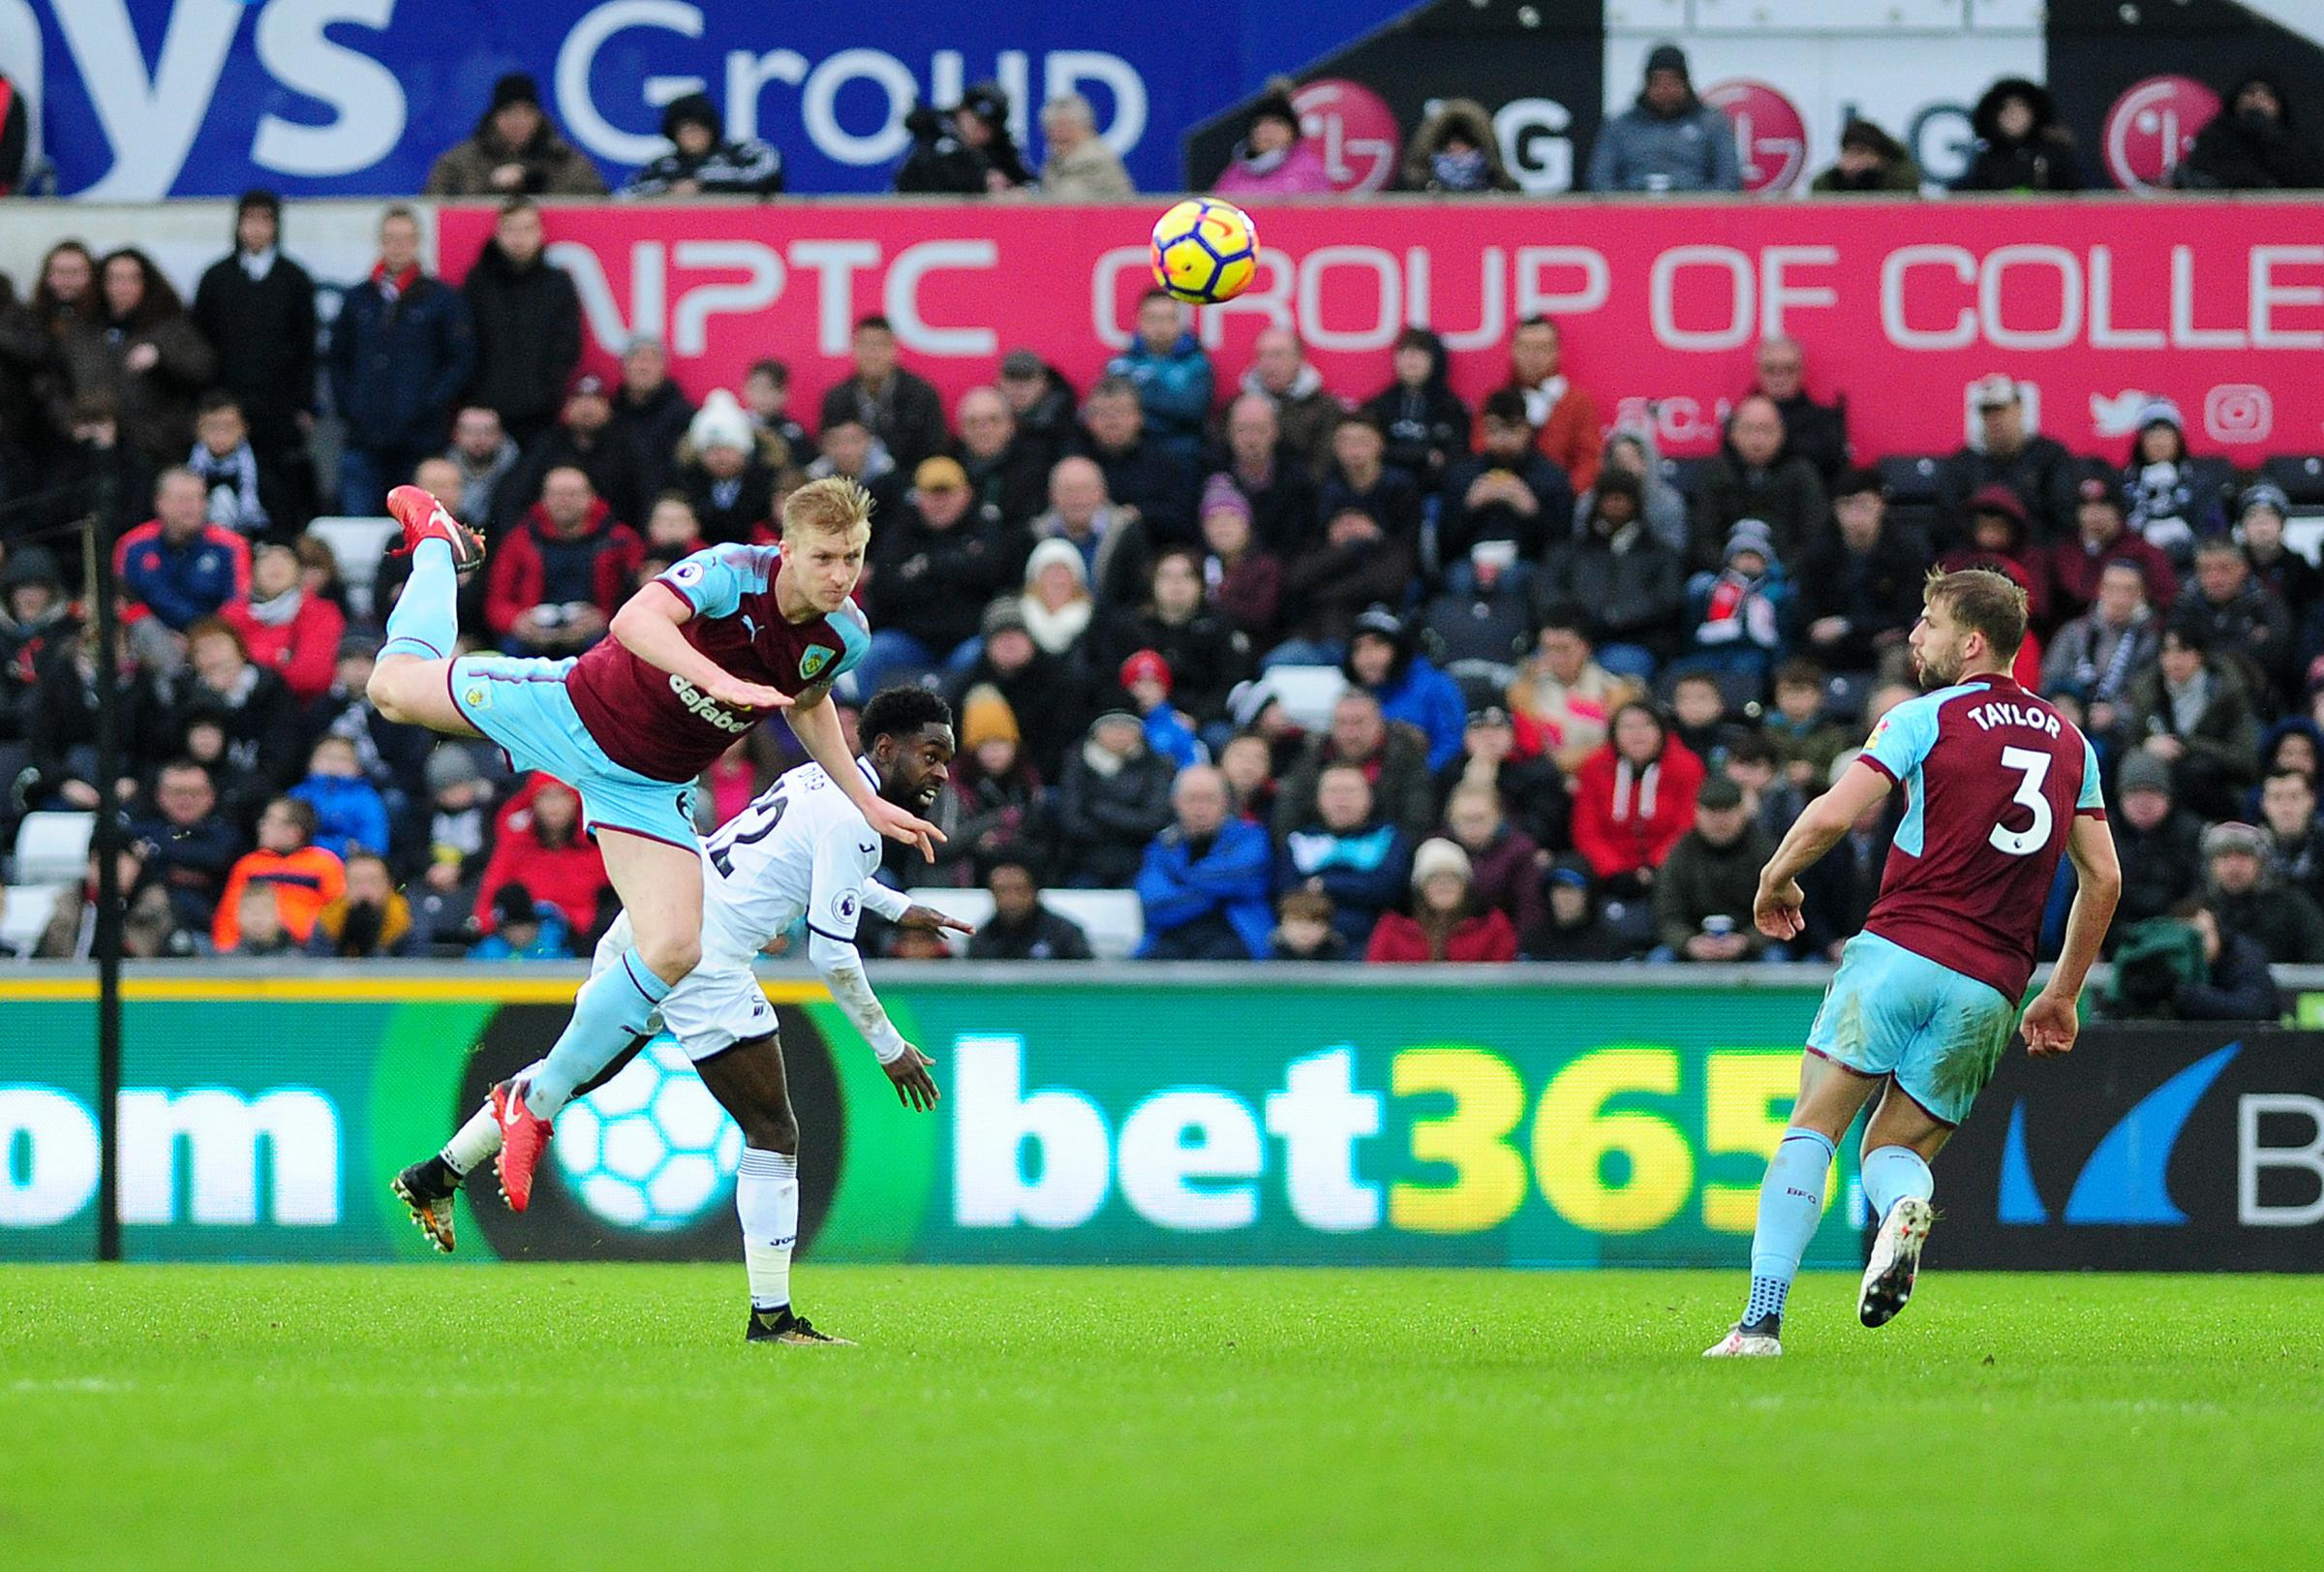 Ben Mee wins a header during the defeat to Swansea City